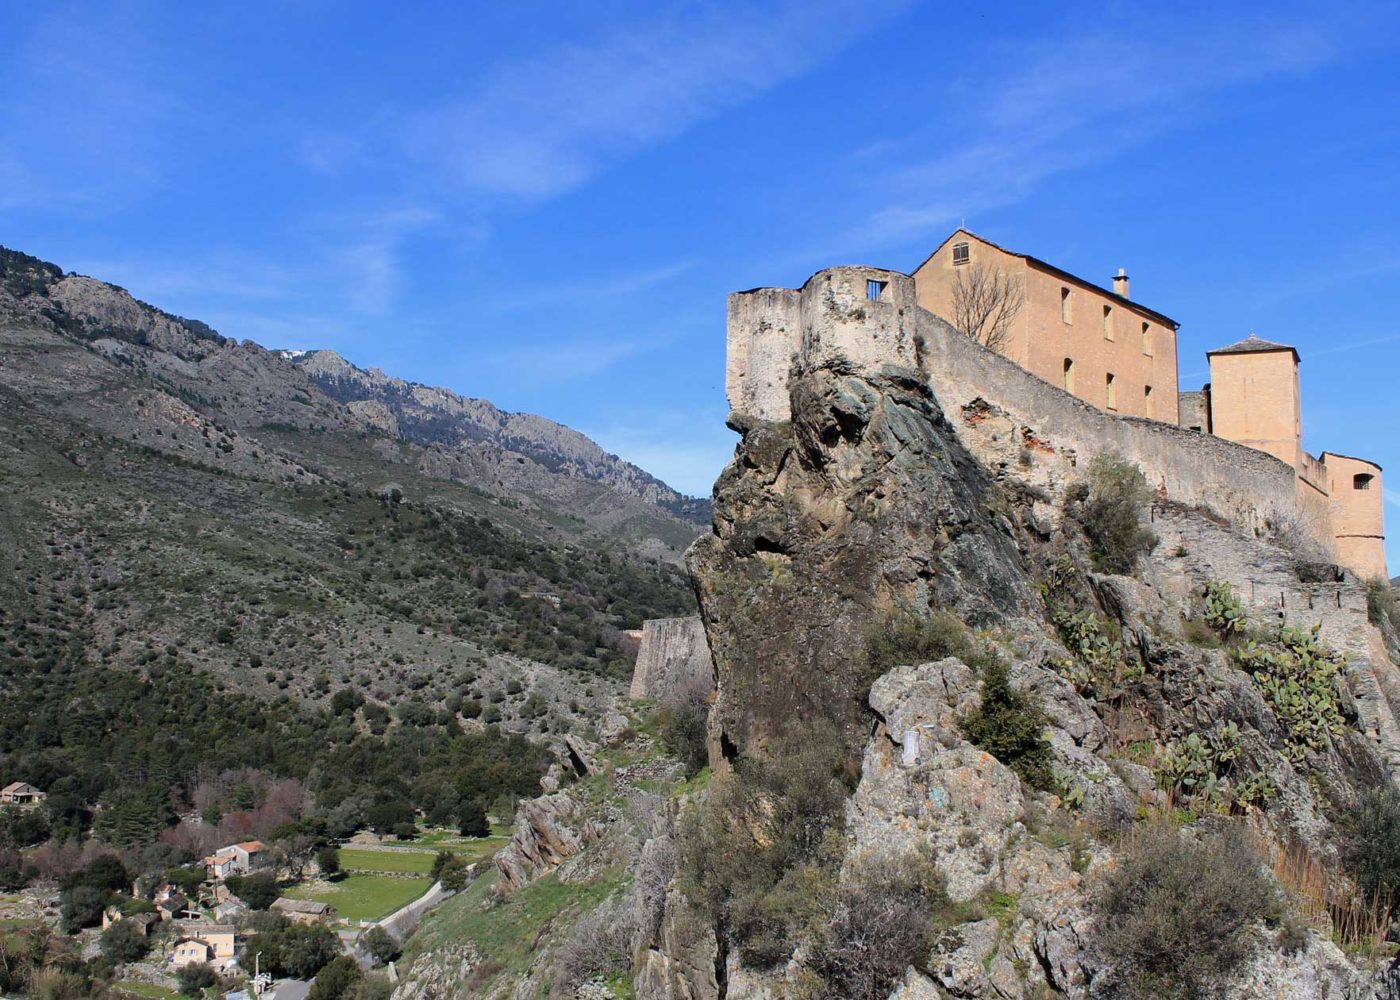 Corte to Calvi Self-Guided Walk